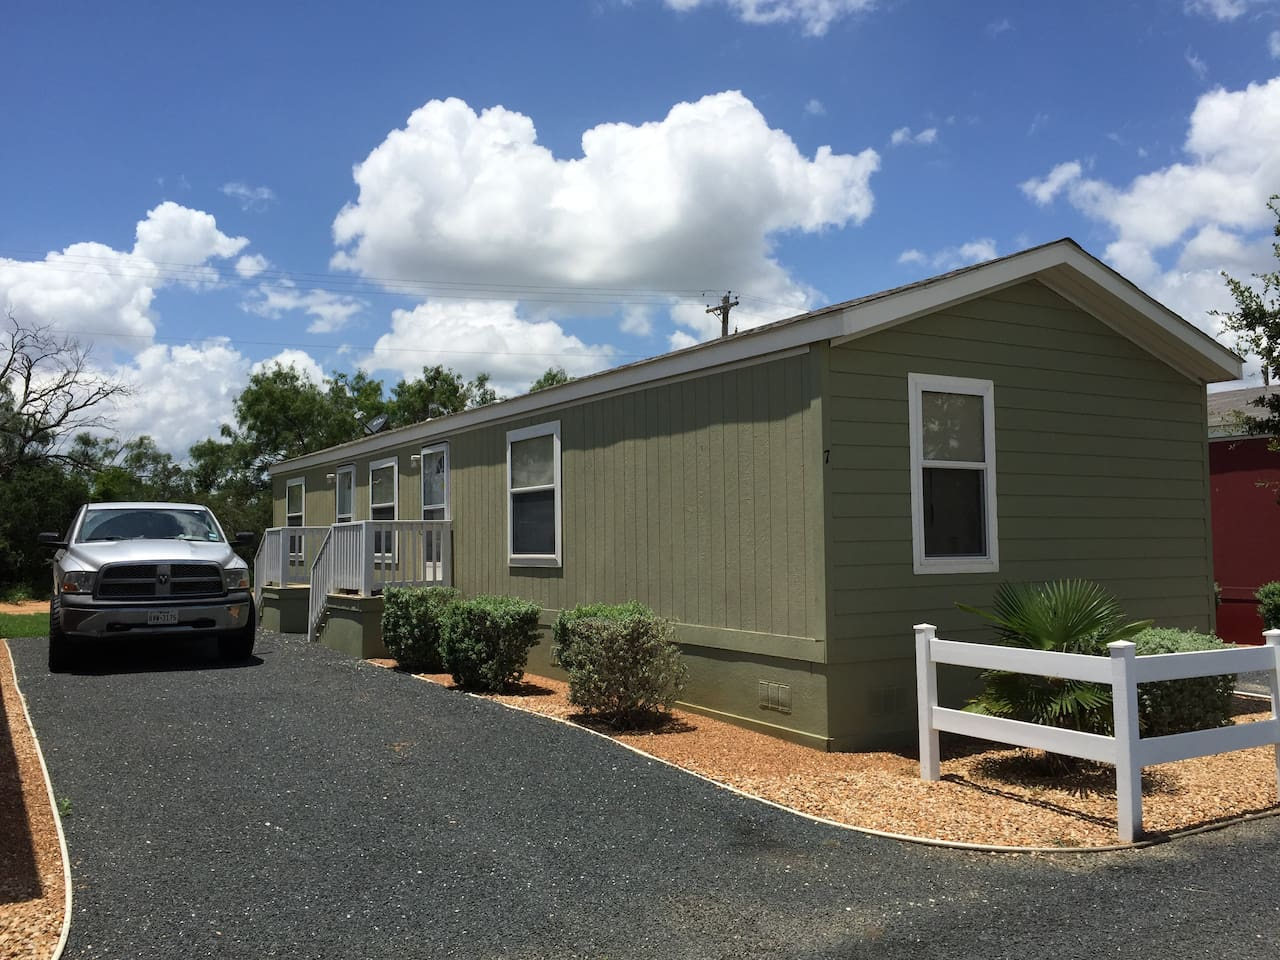 Spacious 2 bedroom home with private driveway